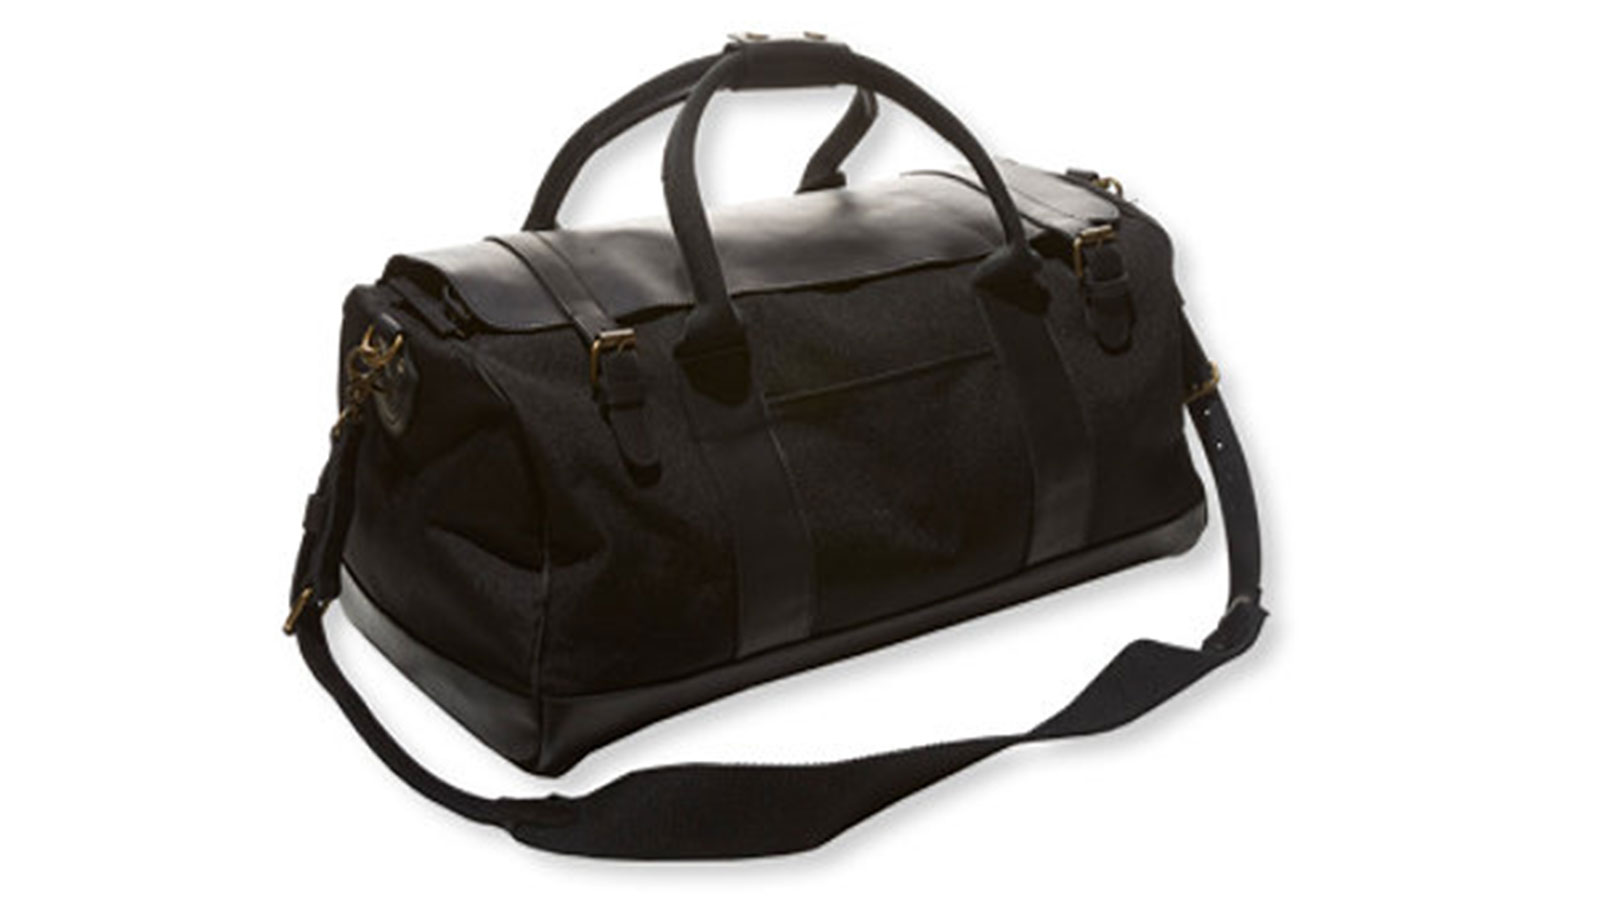 L.L. Bean Signature West Branch Weekender Duffel Bag | the best weekender bags for men